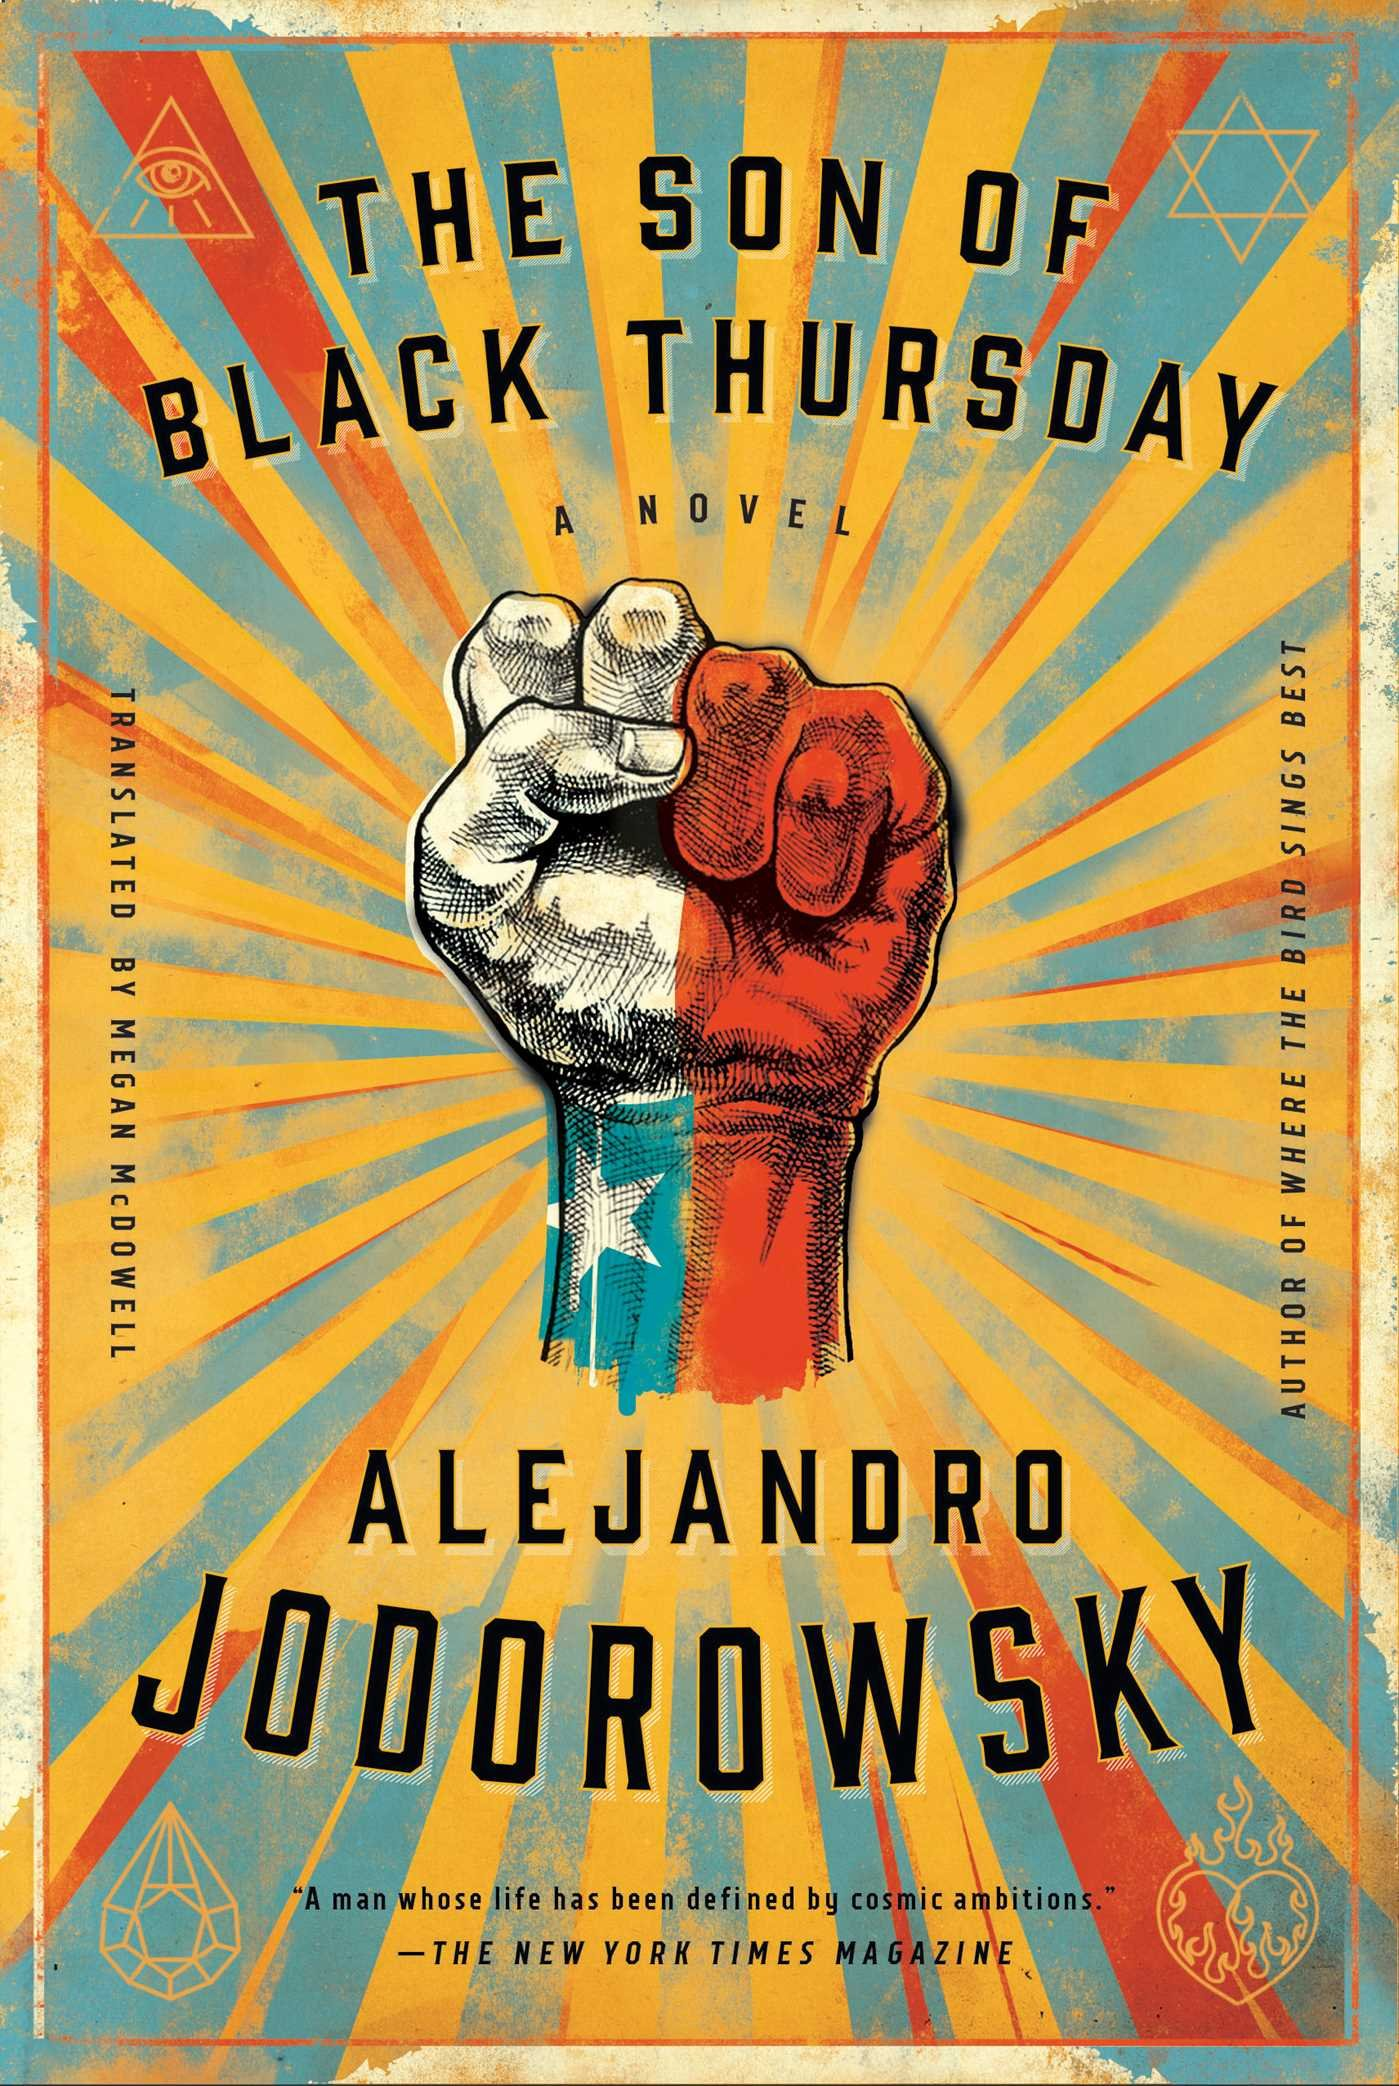 386f0f3e The Son of black thursday by alejandro jodorowsky, translated by megan  mcdowell